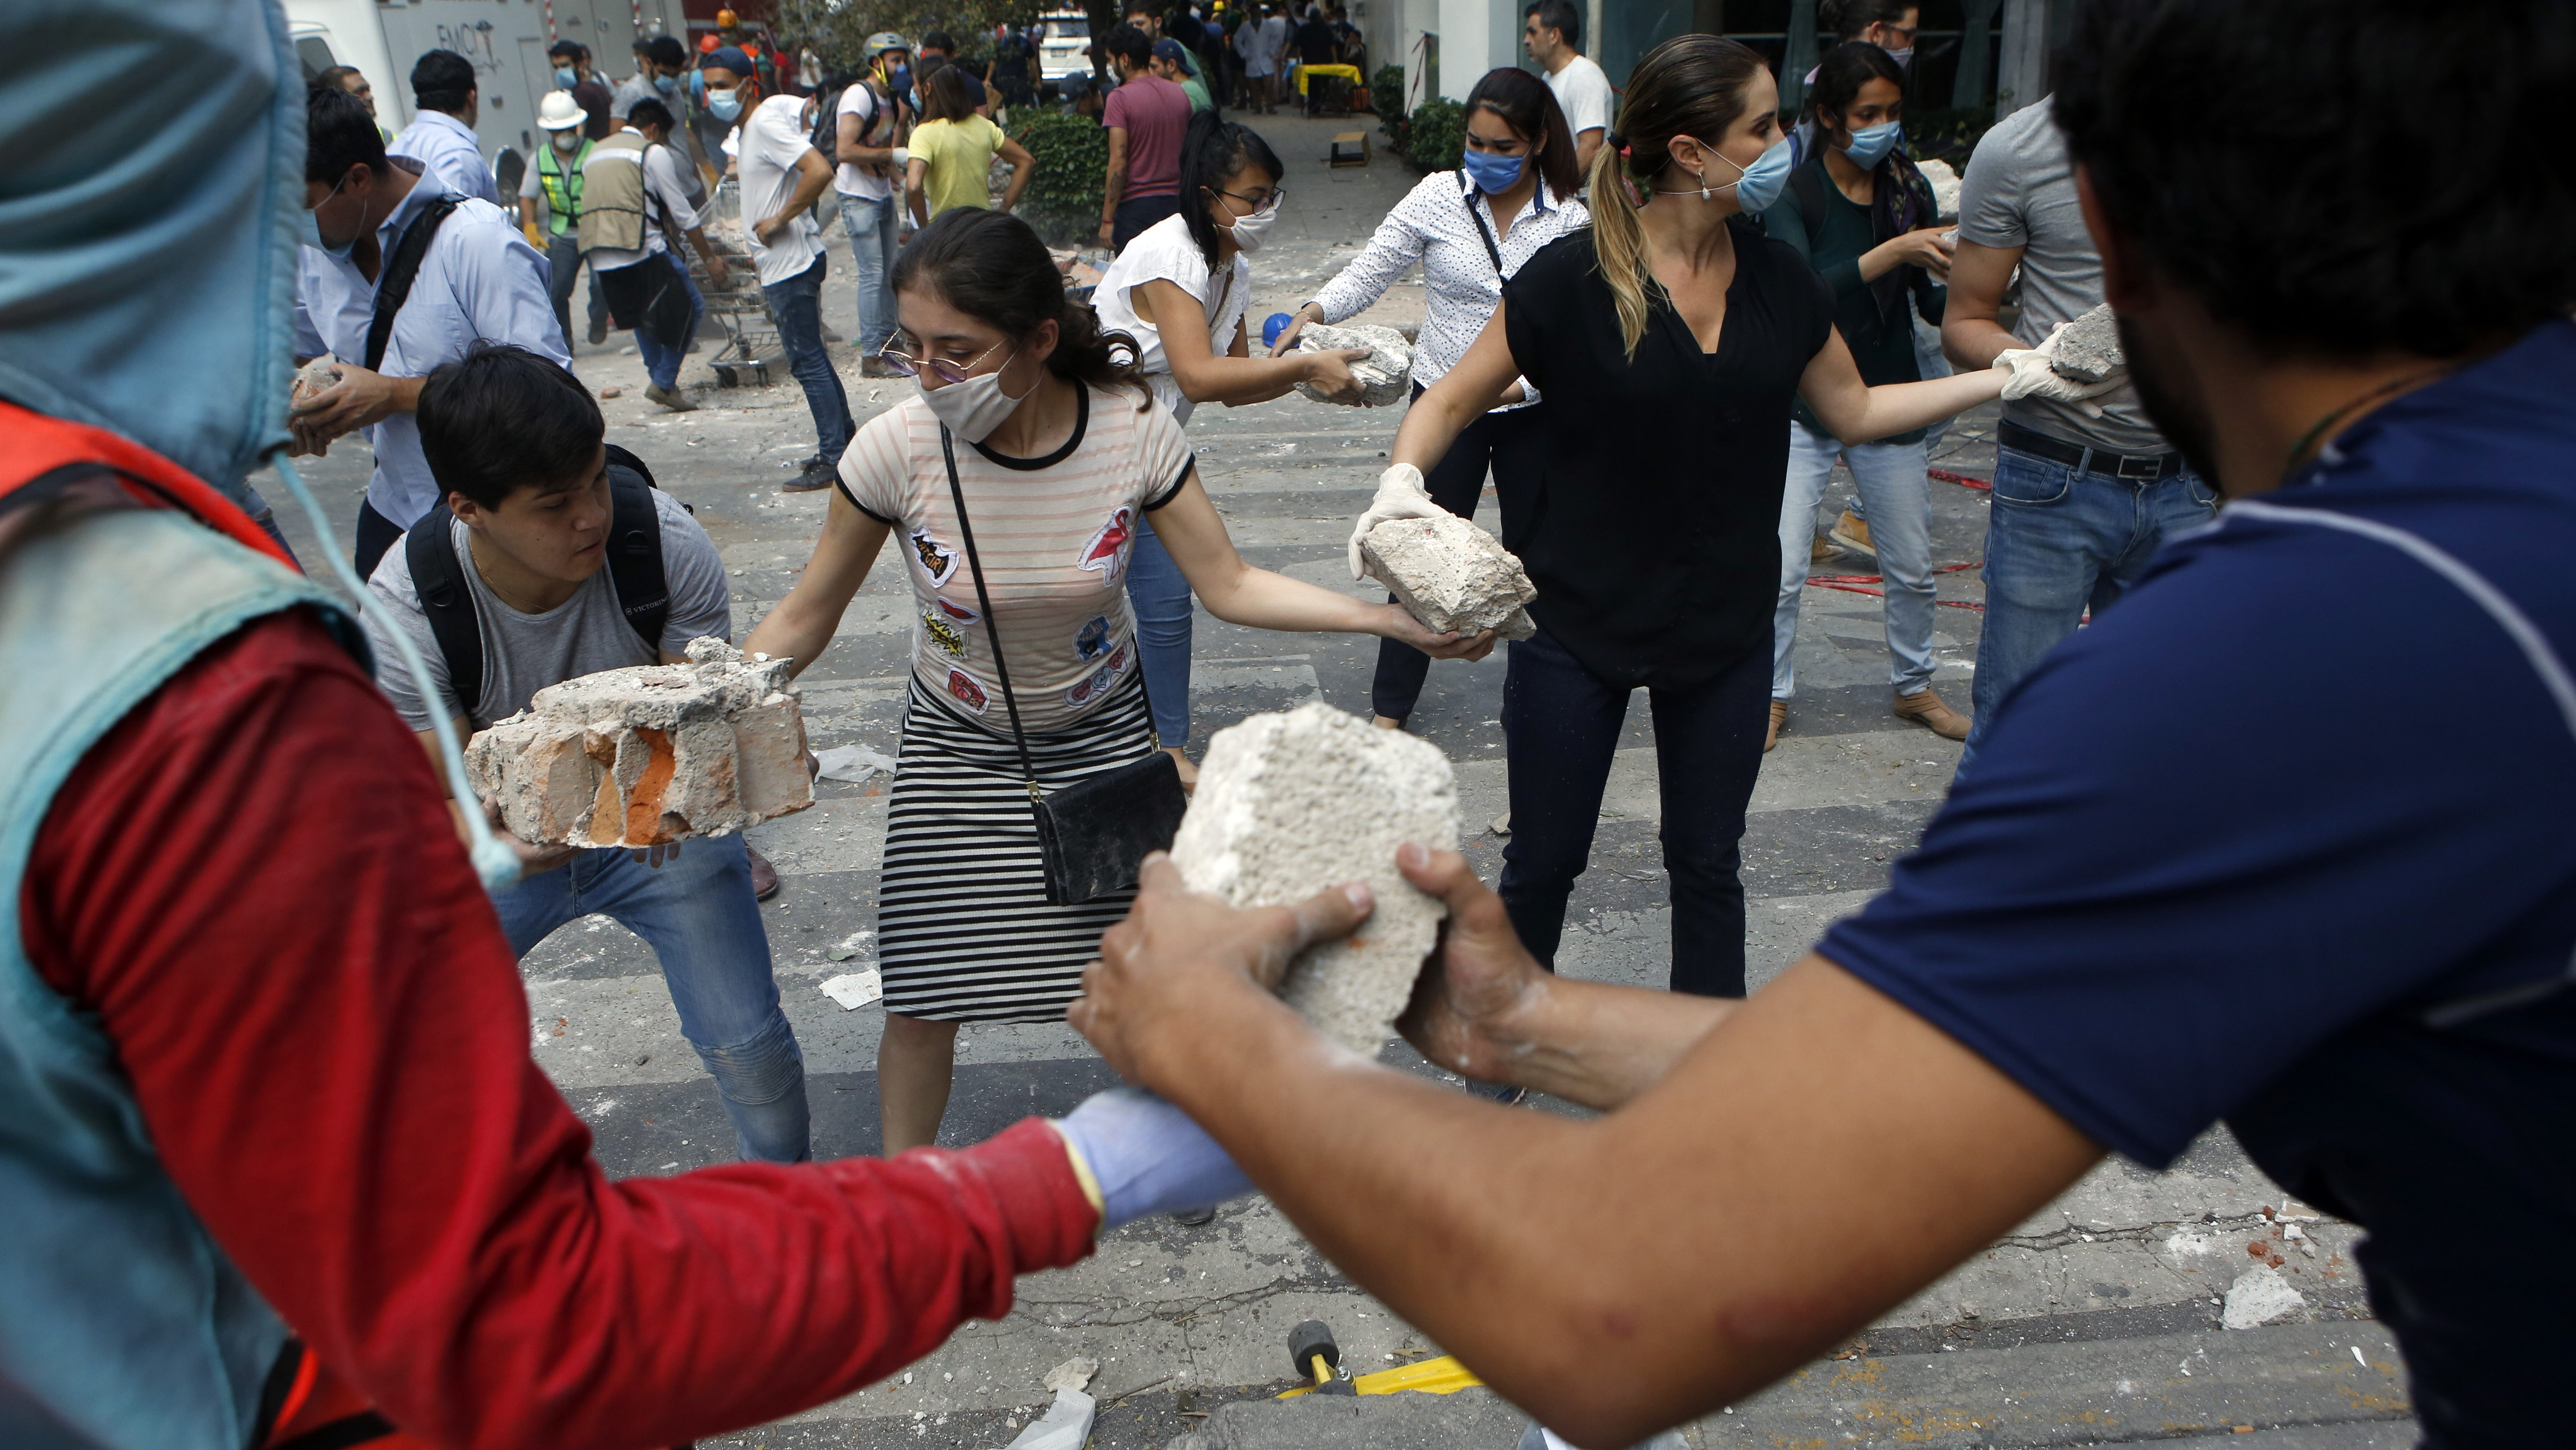 Volunteers pick up the rubble after the sept 19 earthquake in Mexico City